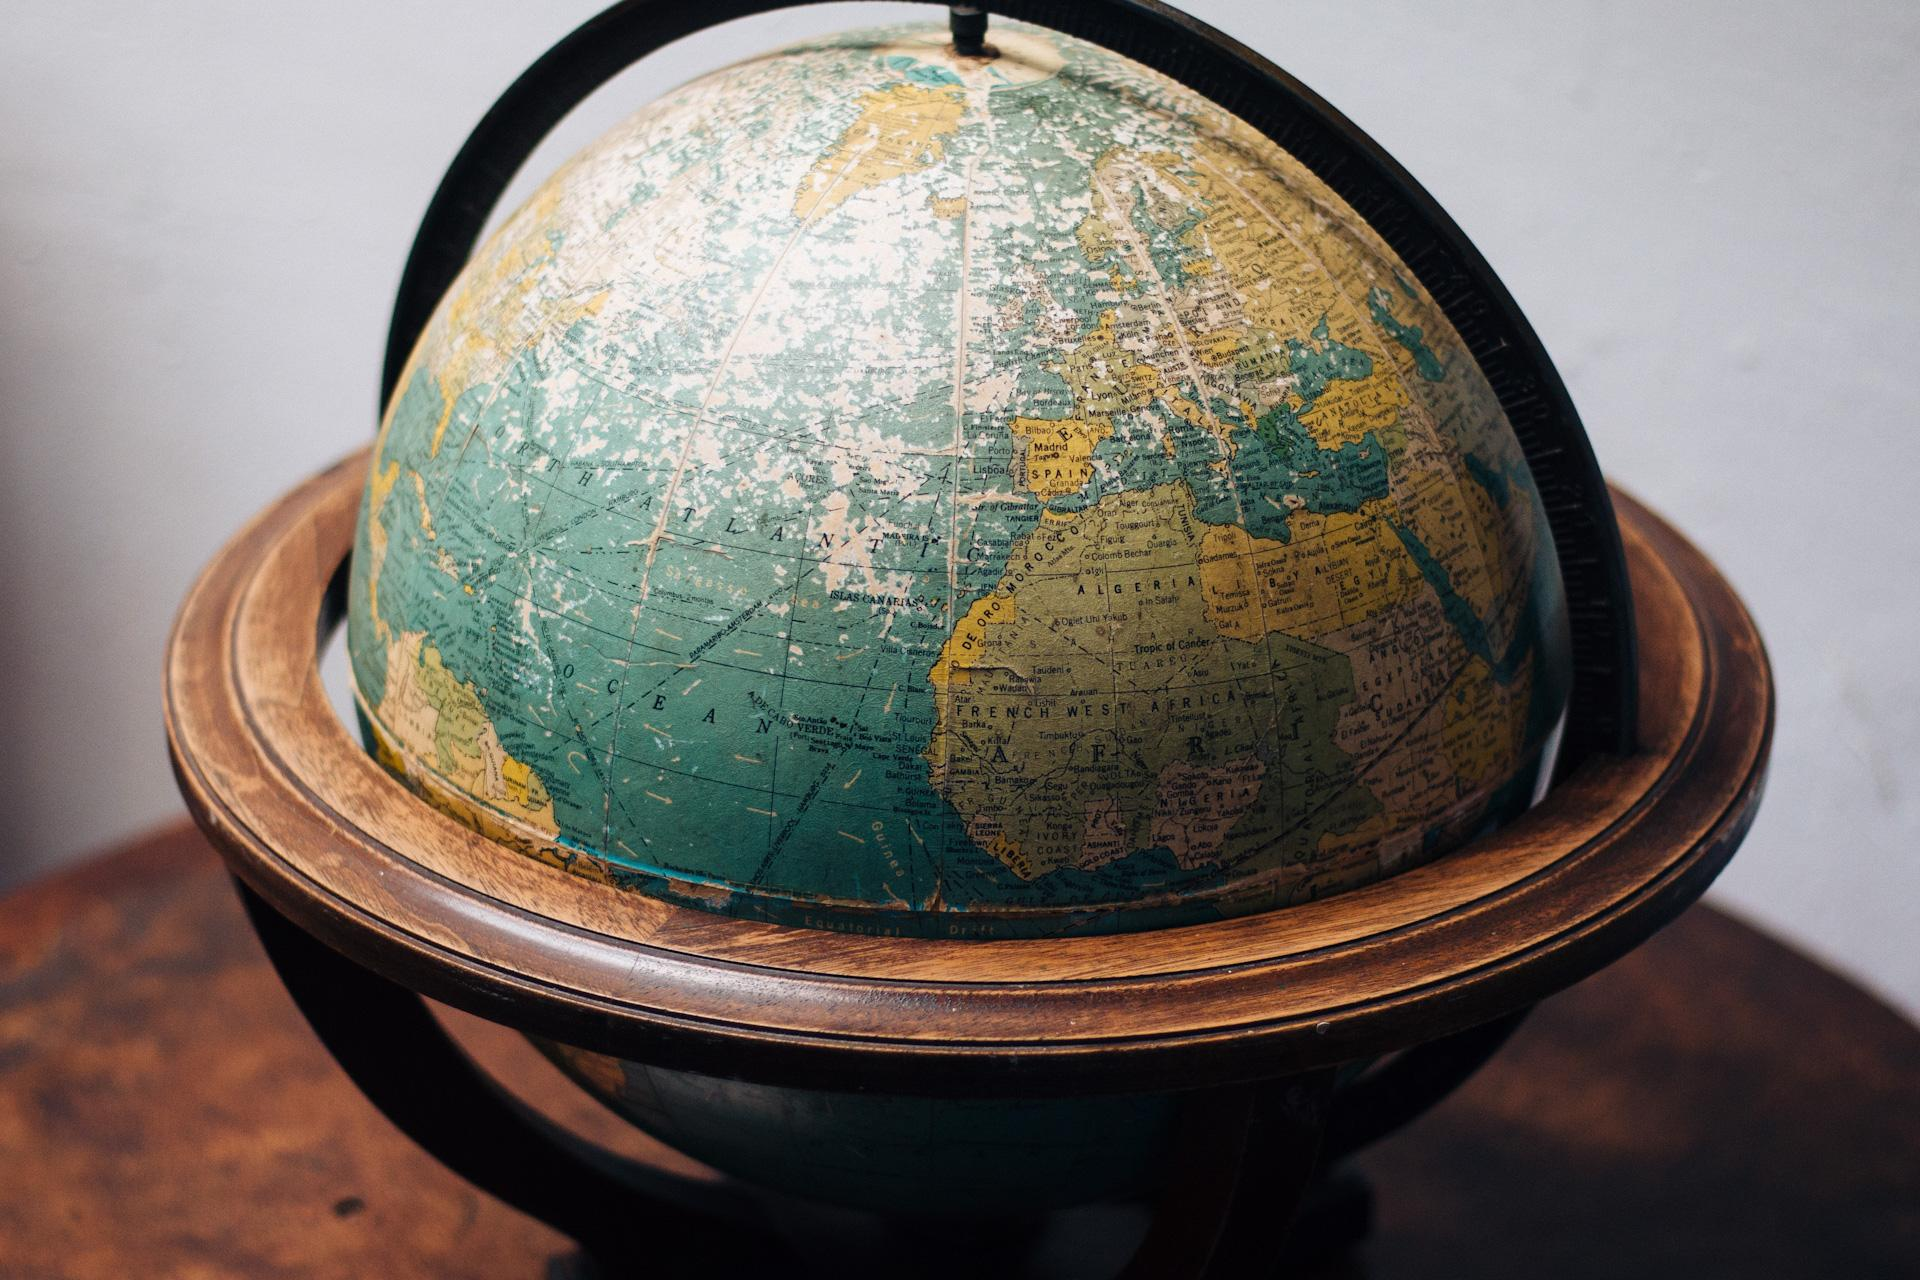 globe of africa and europe